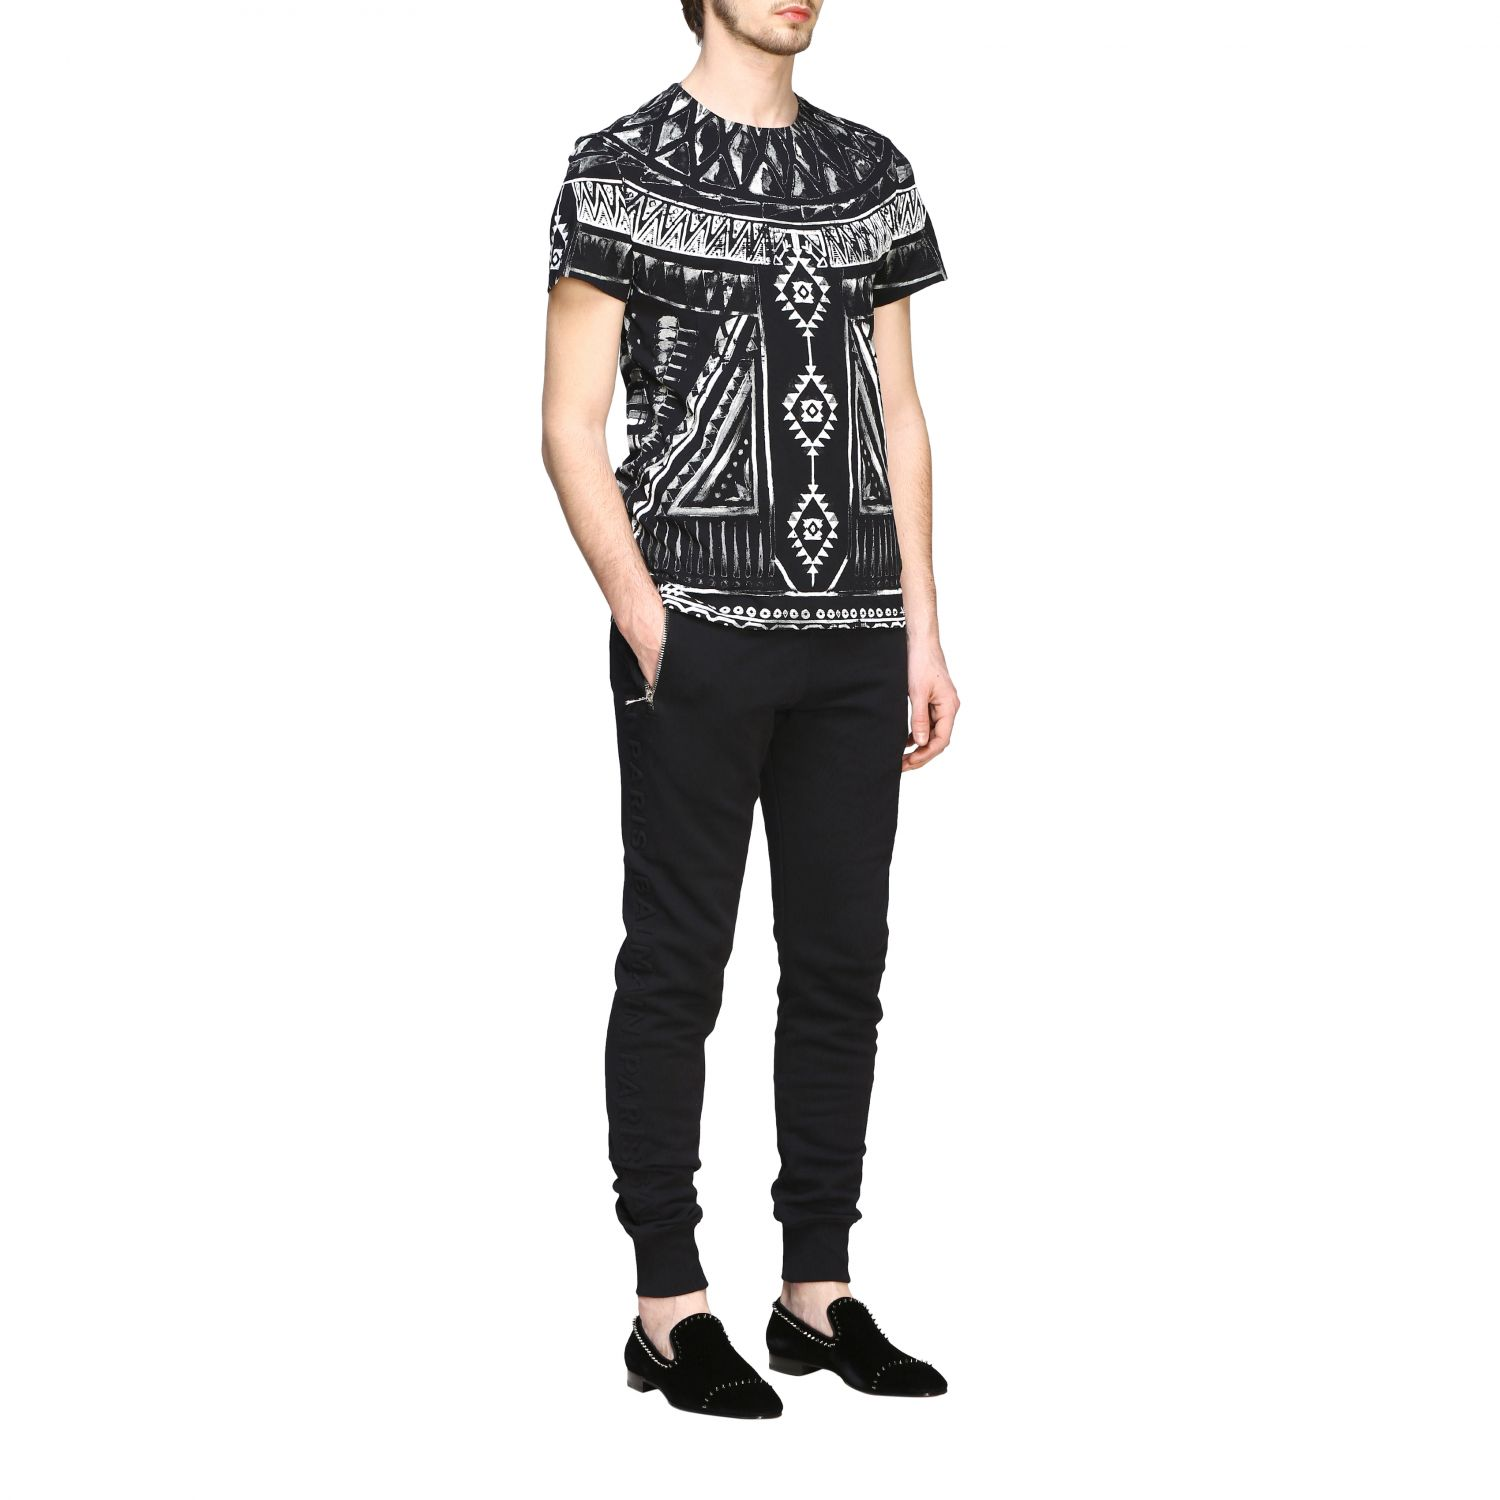 T-shirt Balmain: Balmain printed t-shirt with short sleeves black 2